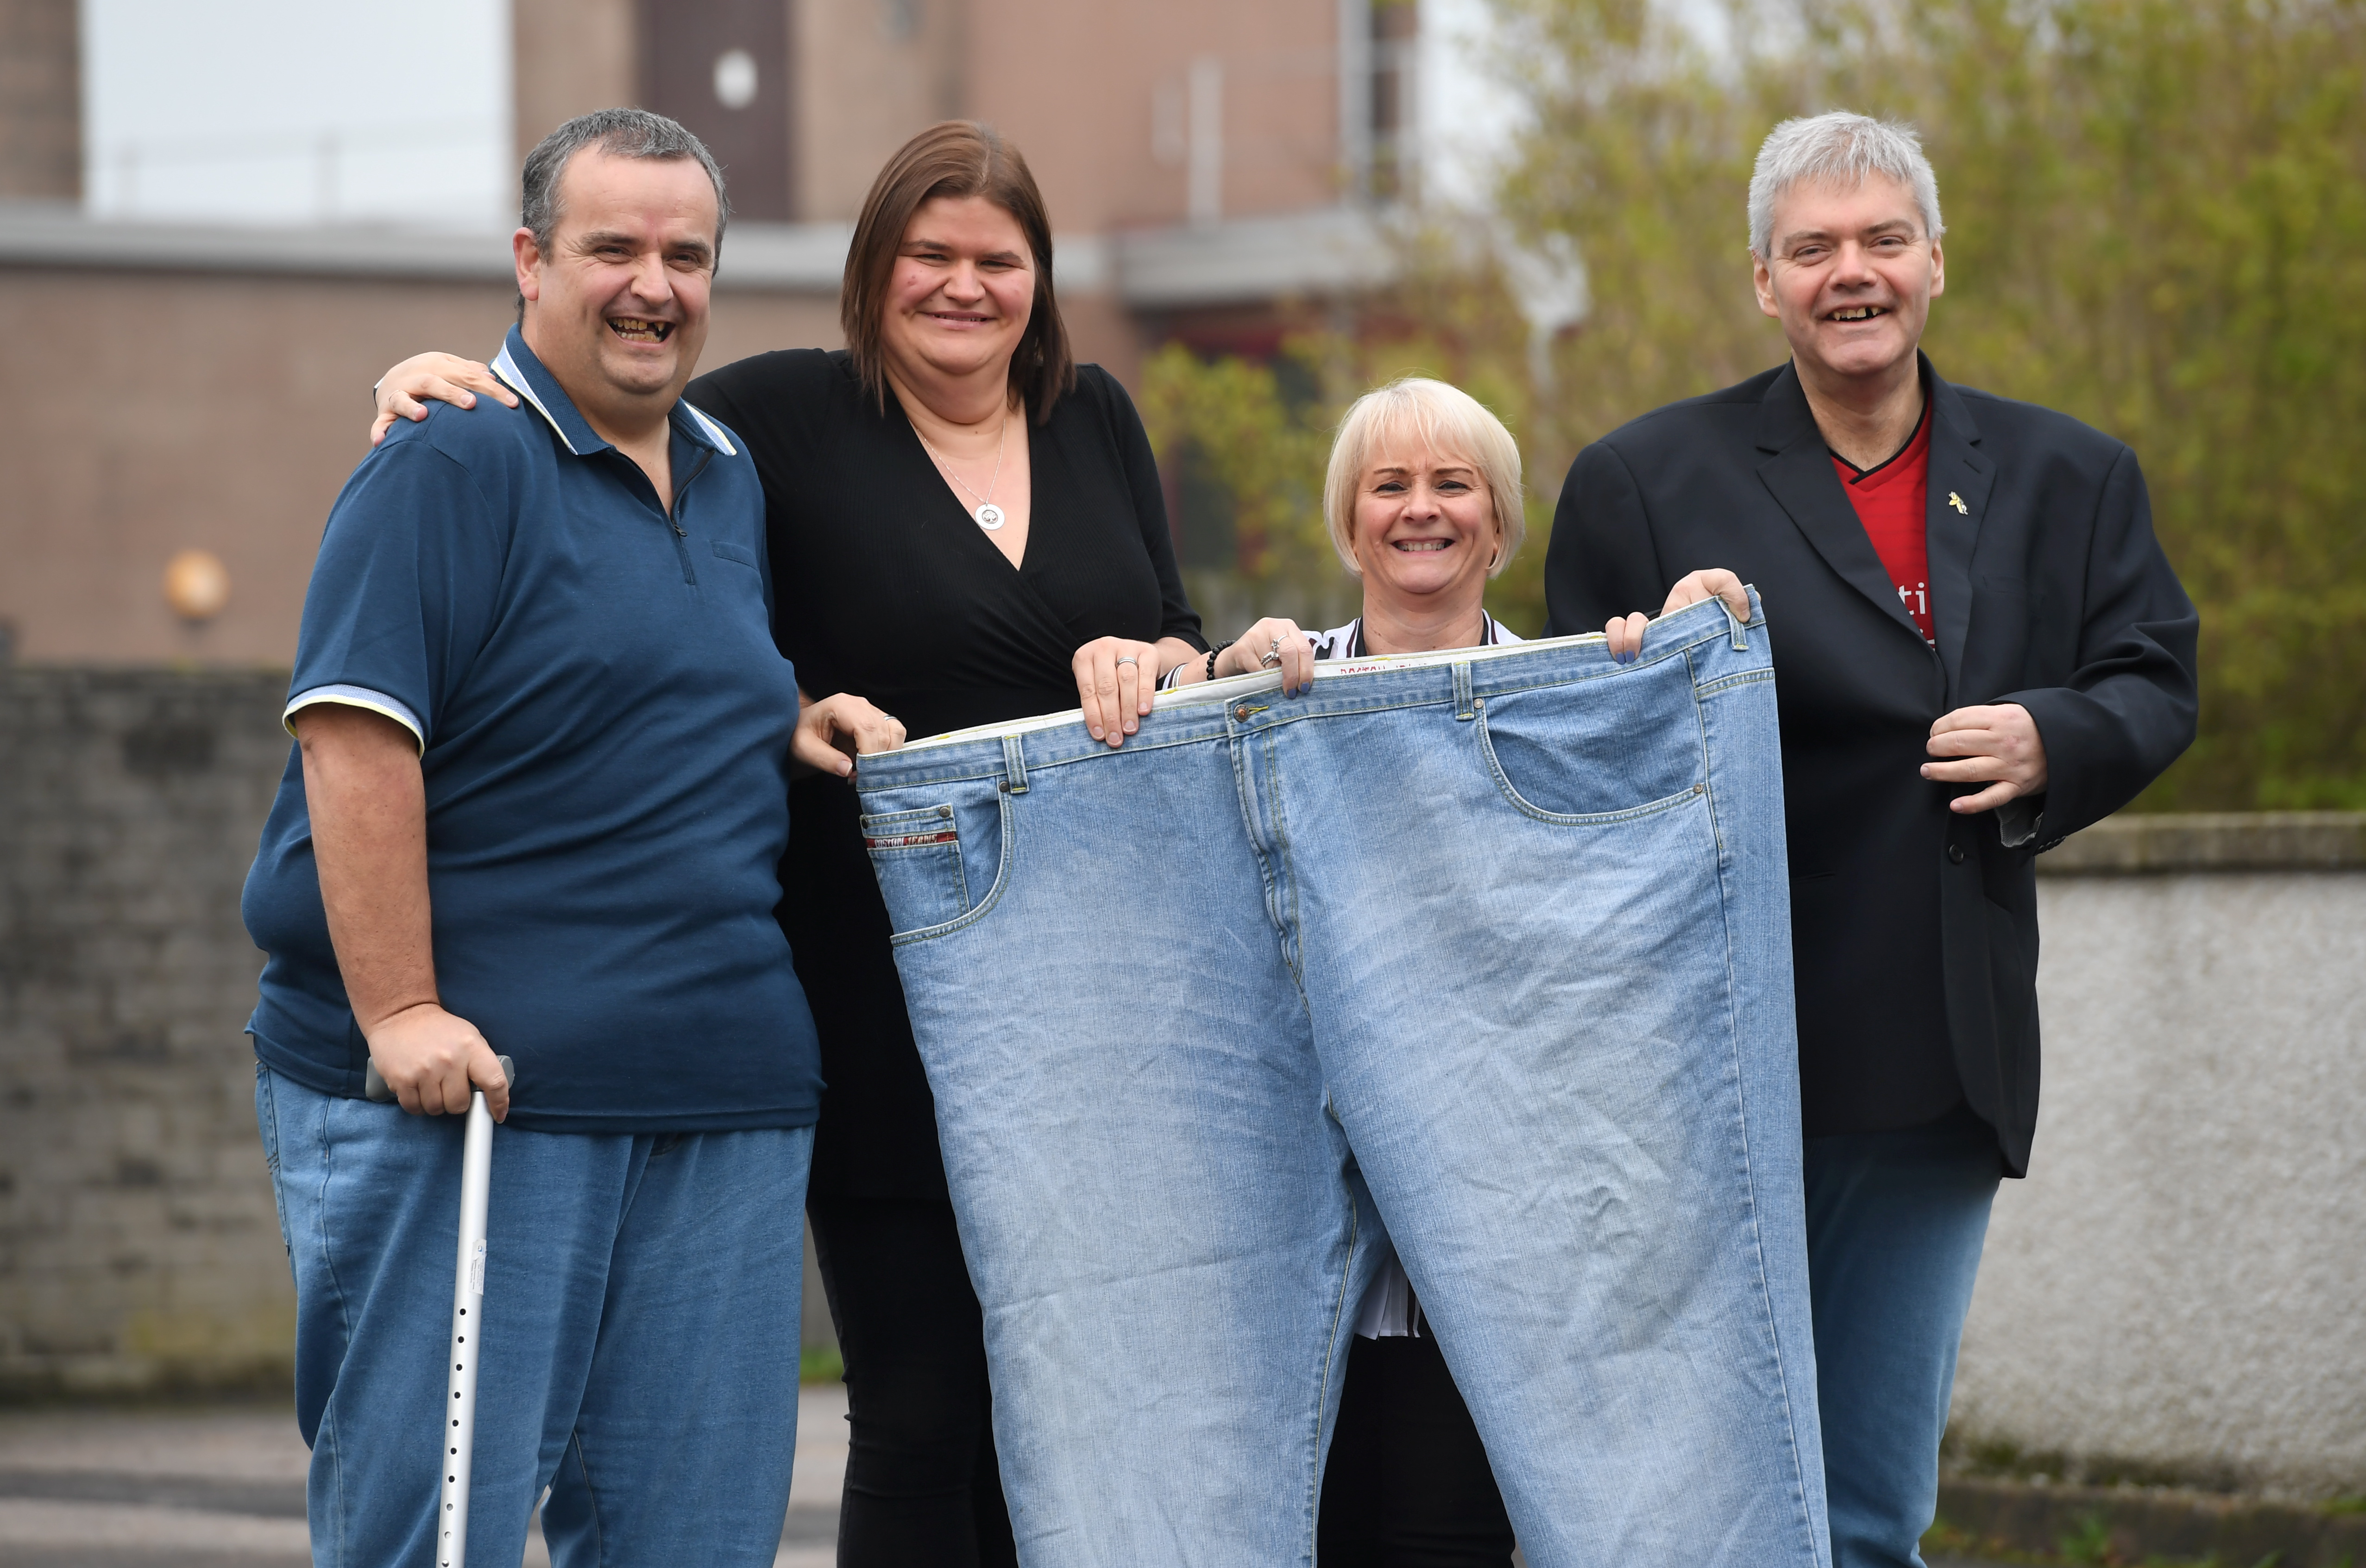 Showing off a pair of Kevin's  old jeans are friends, from left, Kevin Duncan, his wife Carrie Robertson-Duncan, Pam Brown and partner Jim Blagden